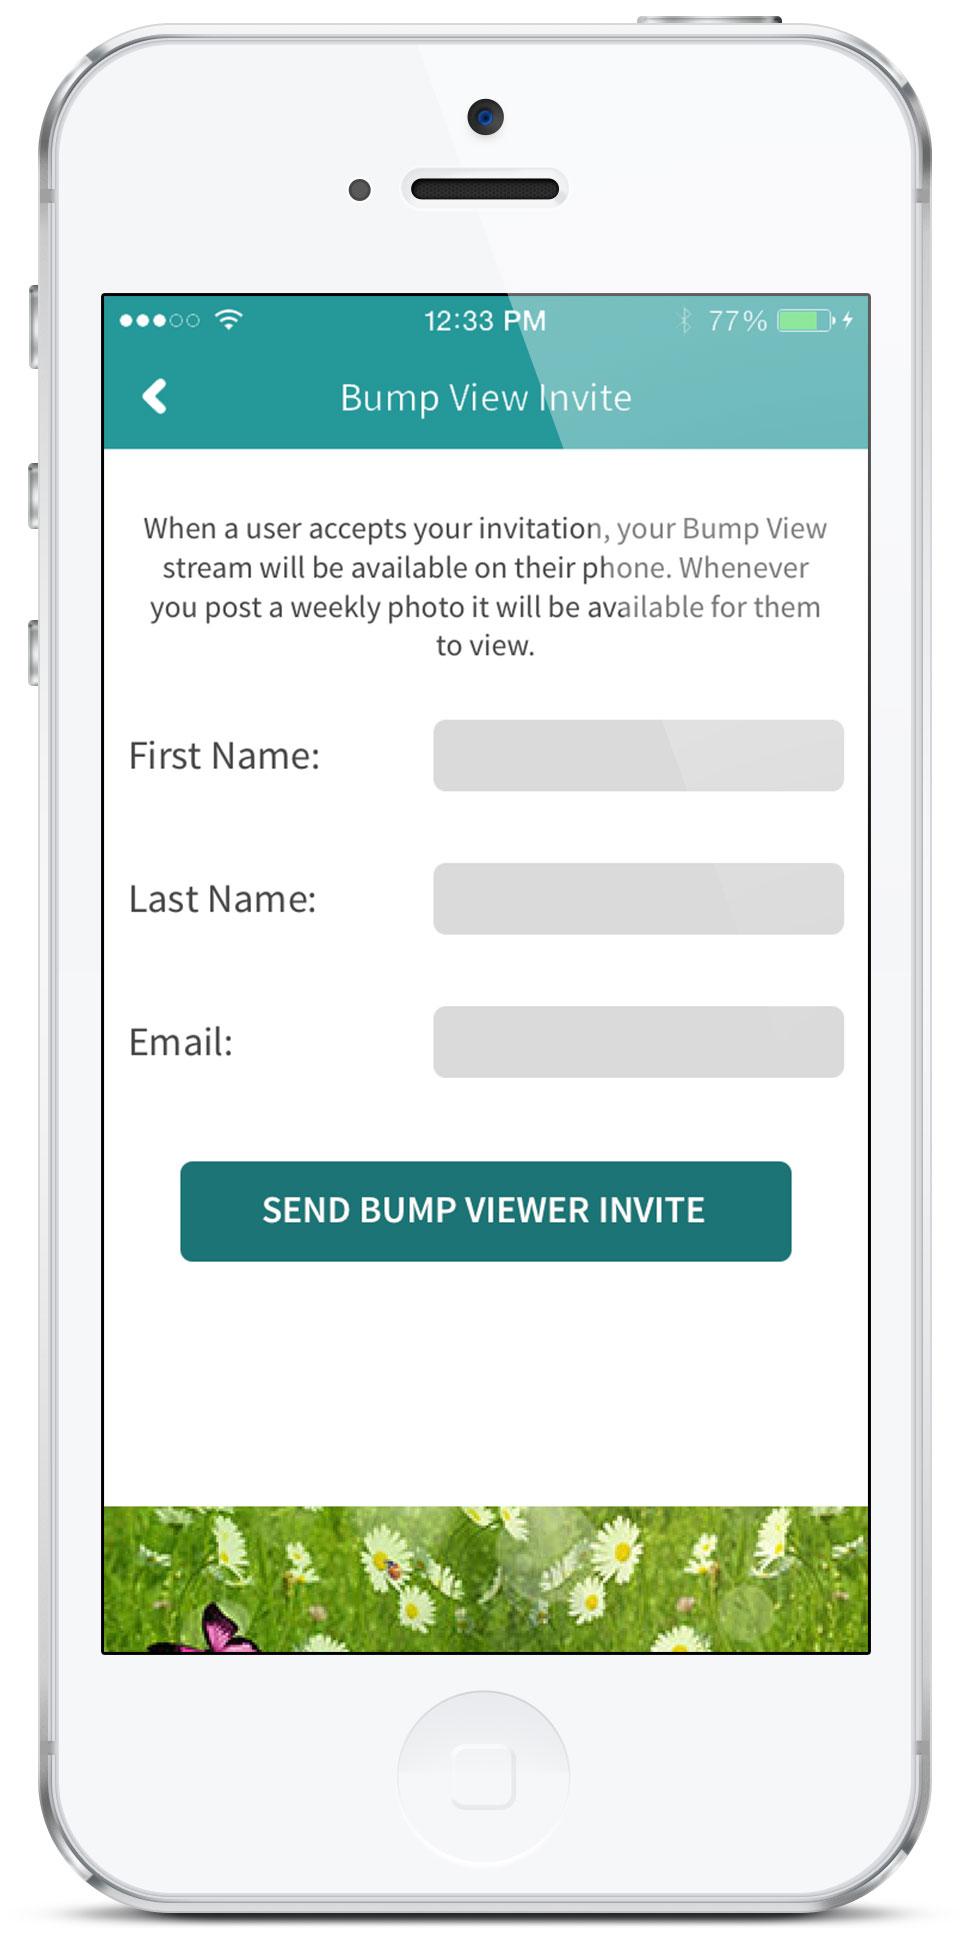 Bump View Invite